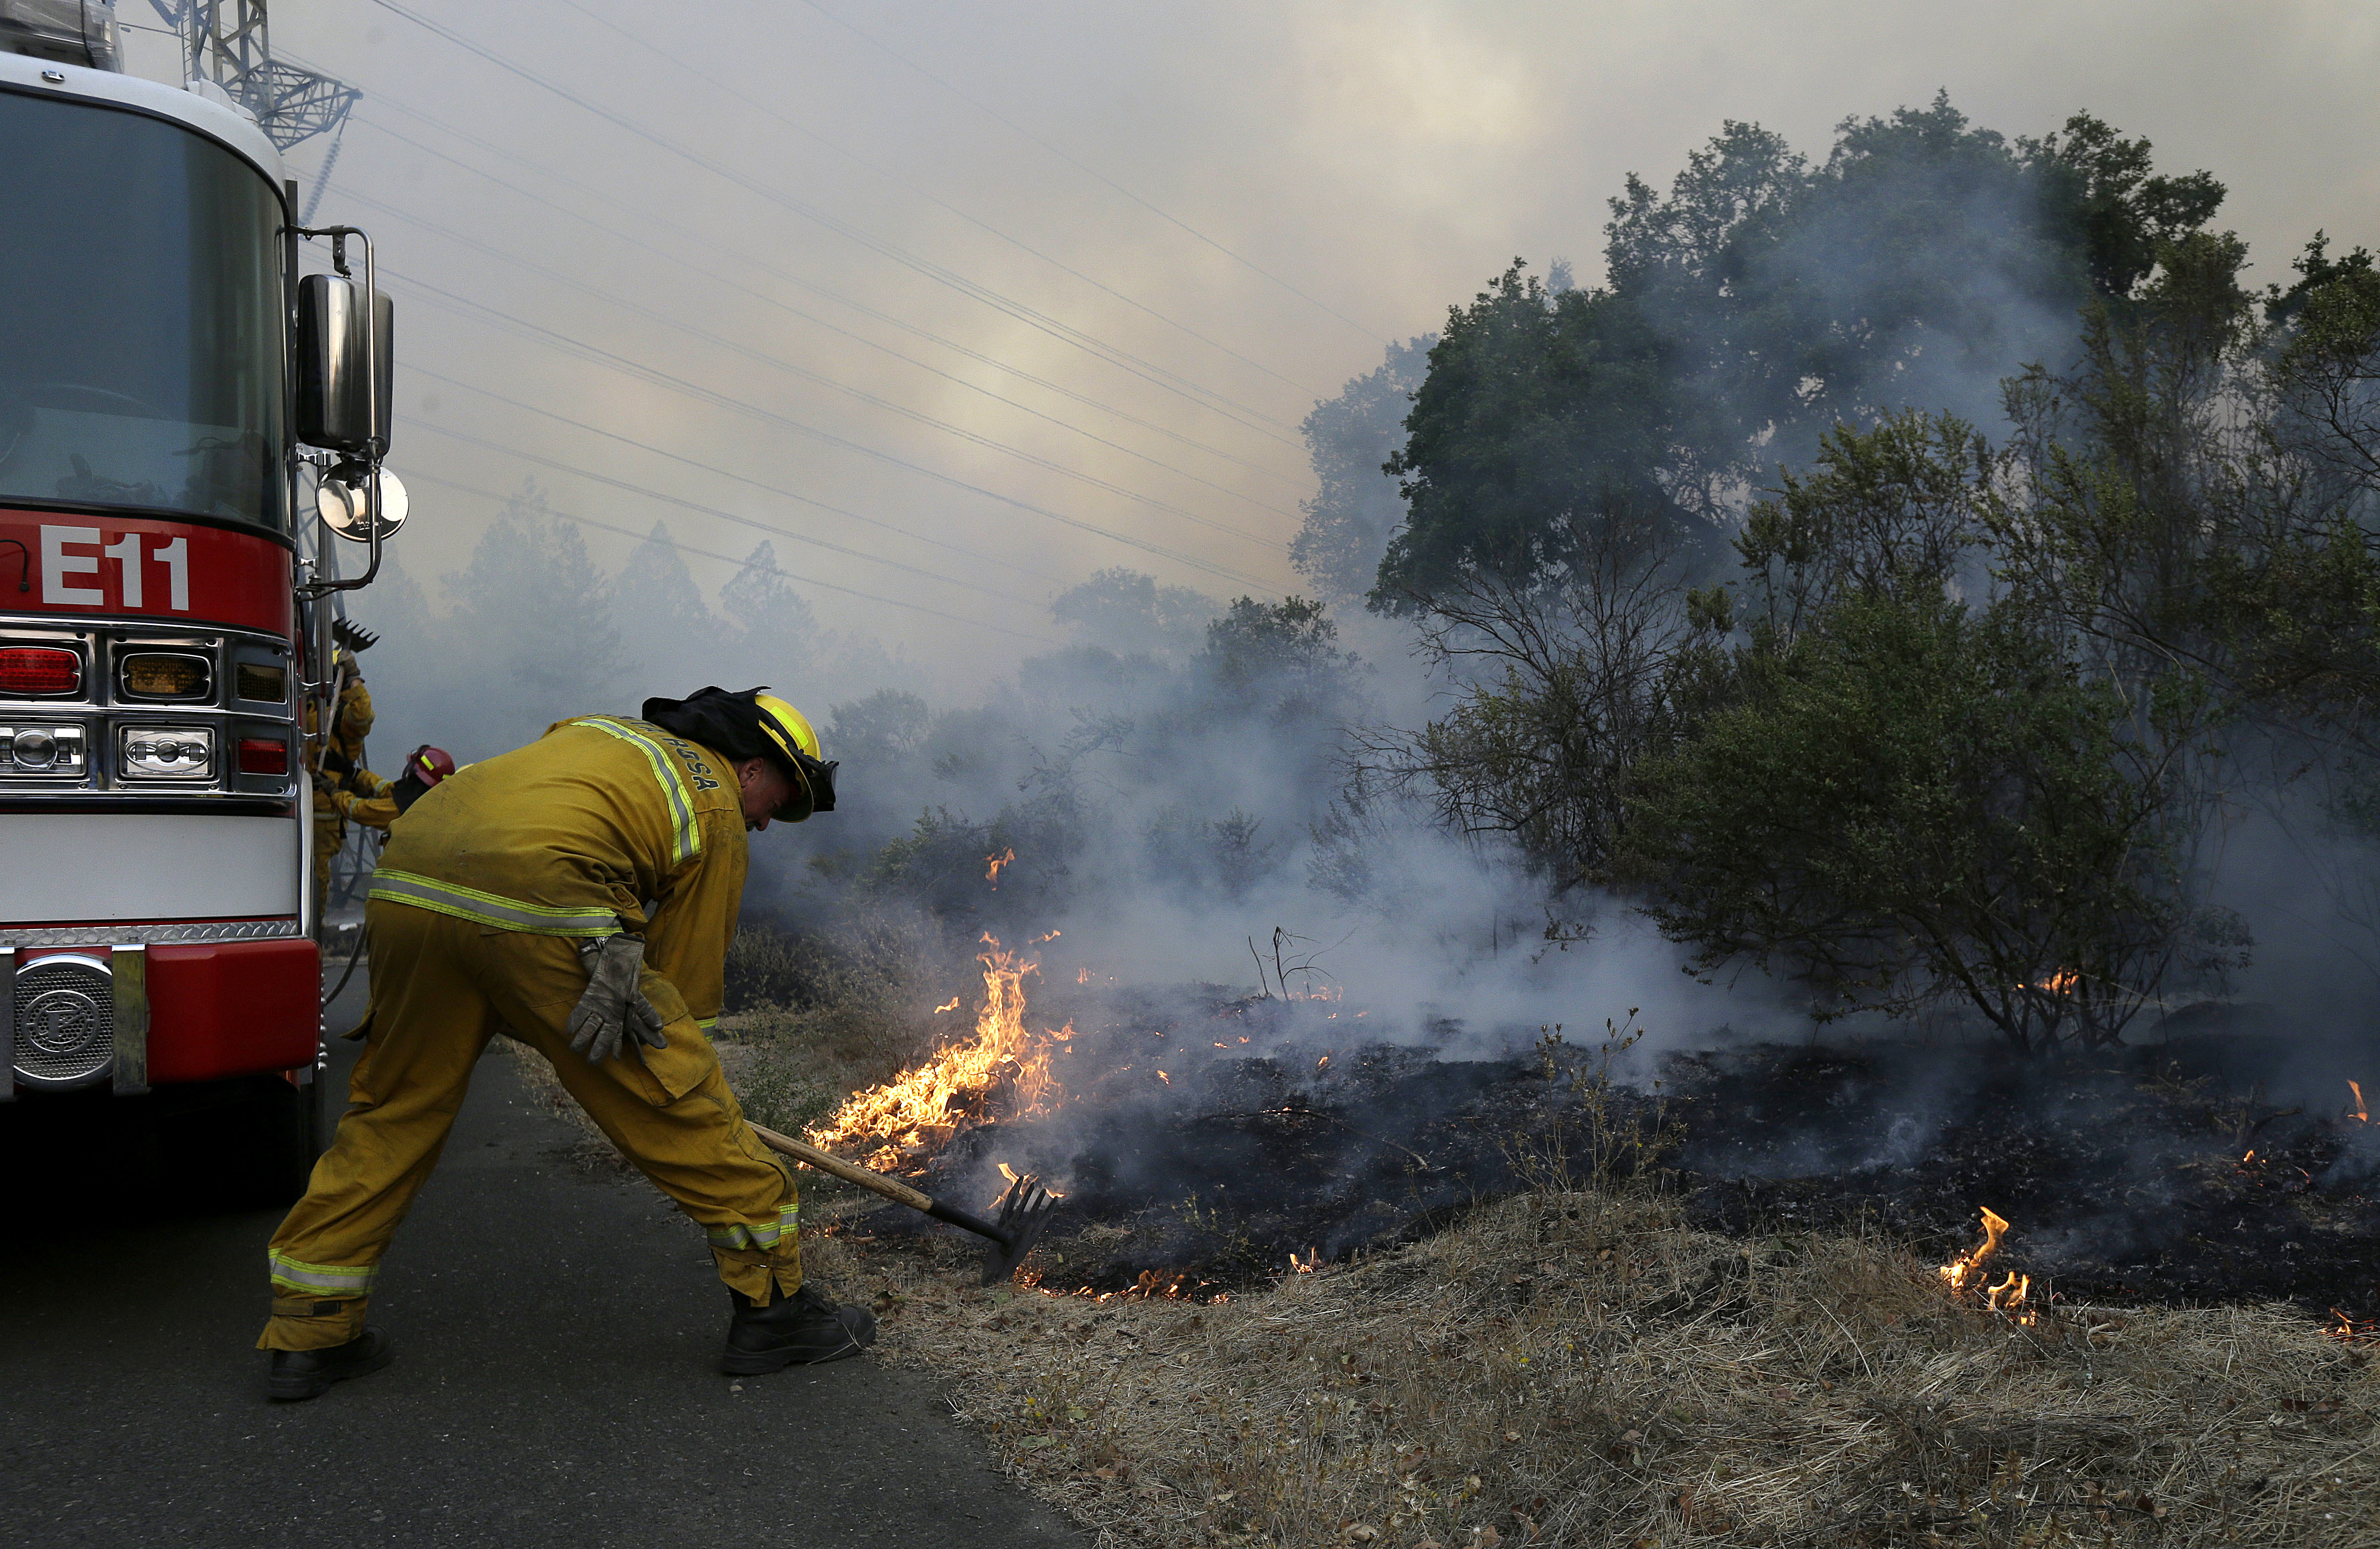 <div class='meta'><div class='origin-logo' data-origin='none'></div><span class='caption-text' data-credit='Jeff Chiu/AP Photo'>Santa Rosa firefighters work on a fire on the side of a road near the Oakmont area in Santa Rosa, Calif., Tuesday, Oct. 10, 2017.</span></div>